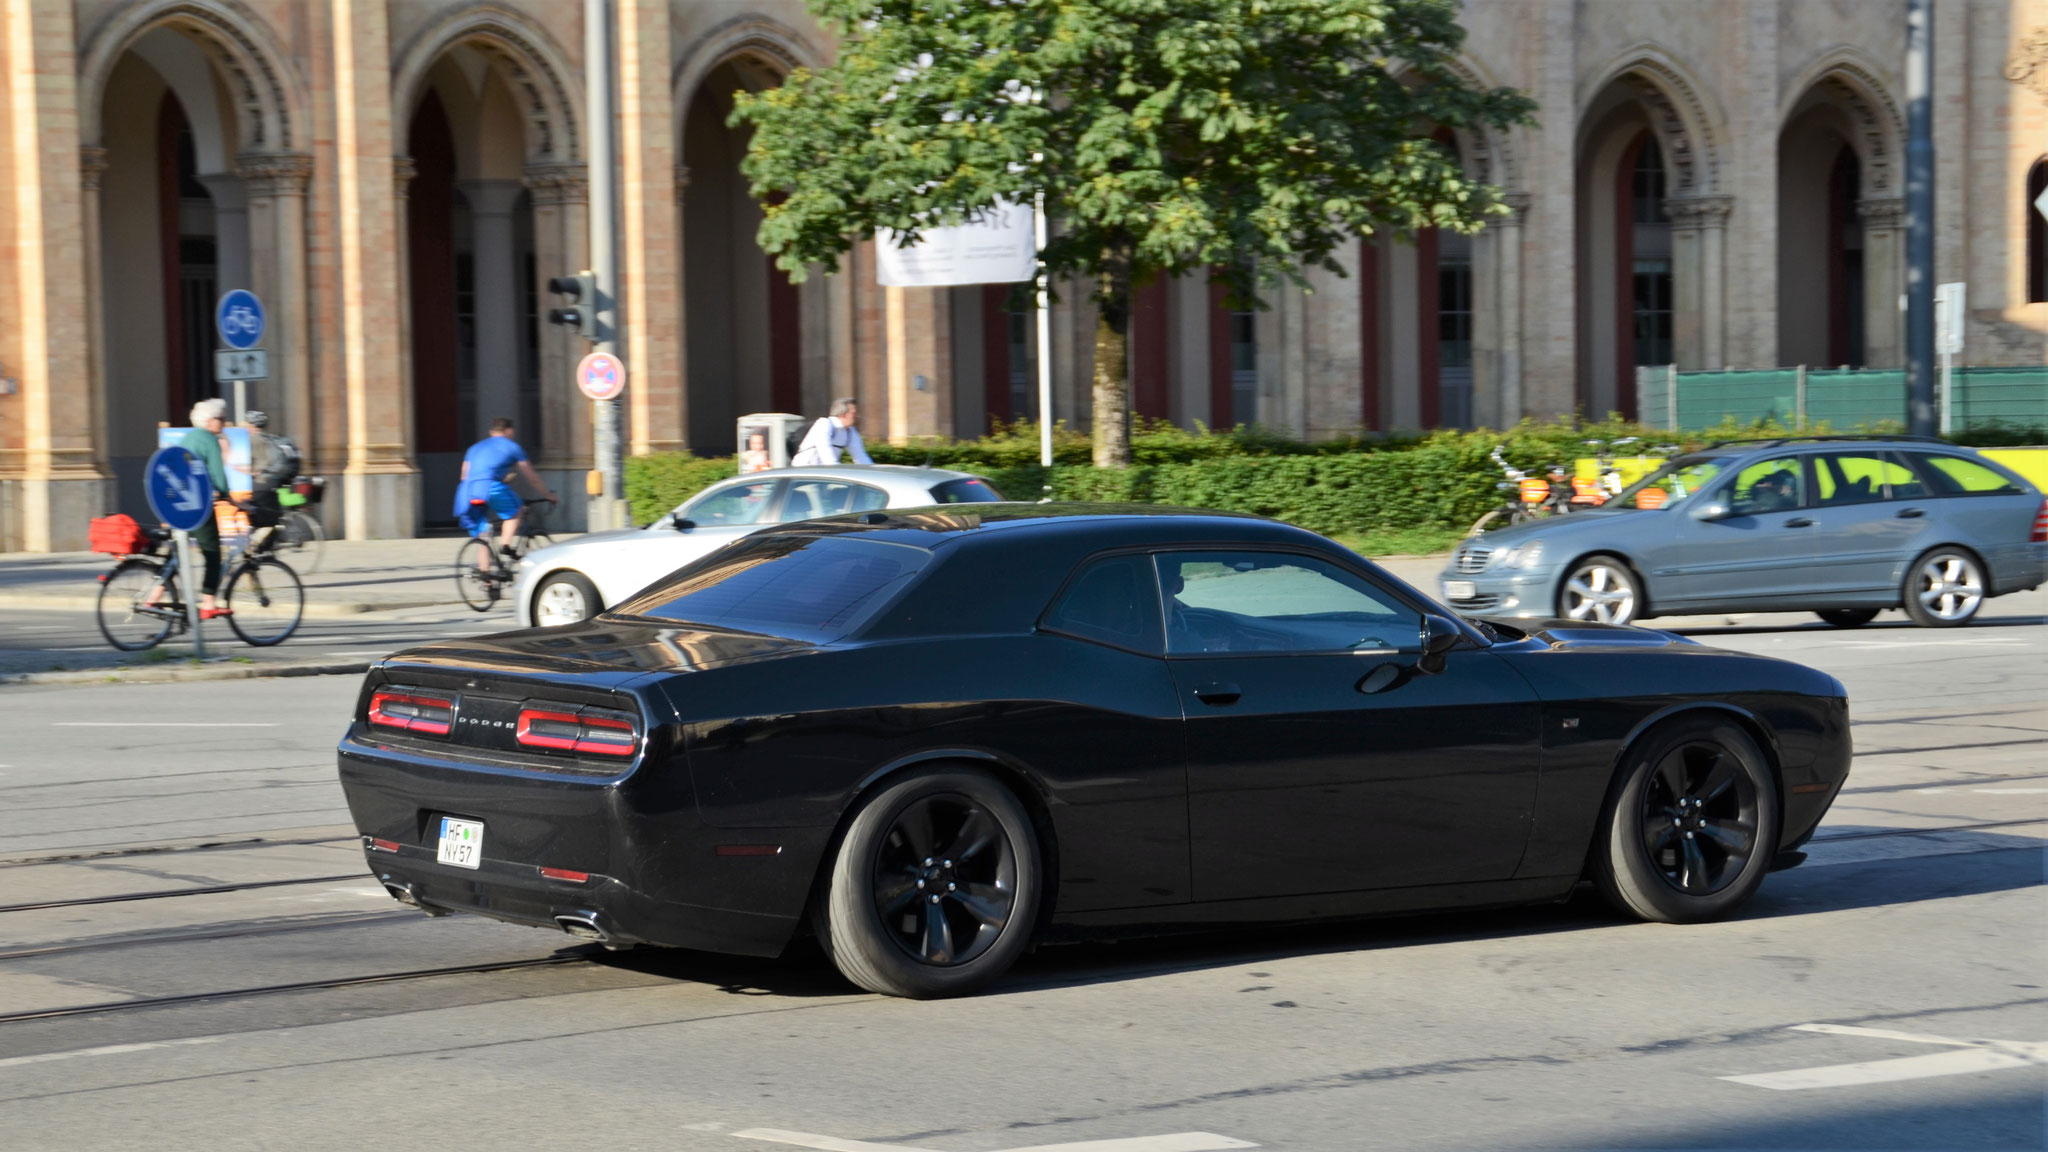 Dodge Challenger R/T - HF-NY-57